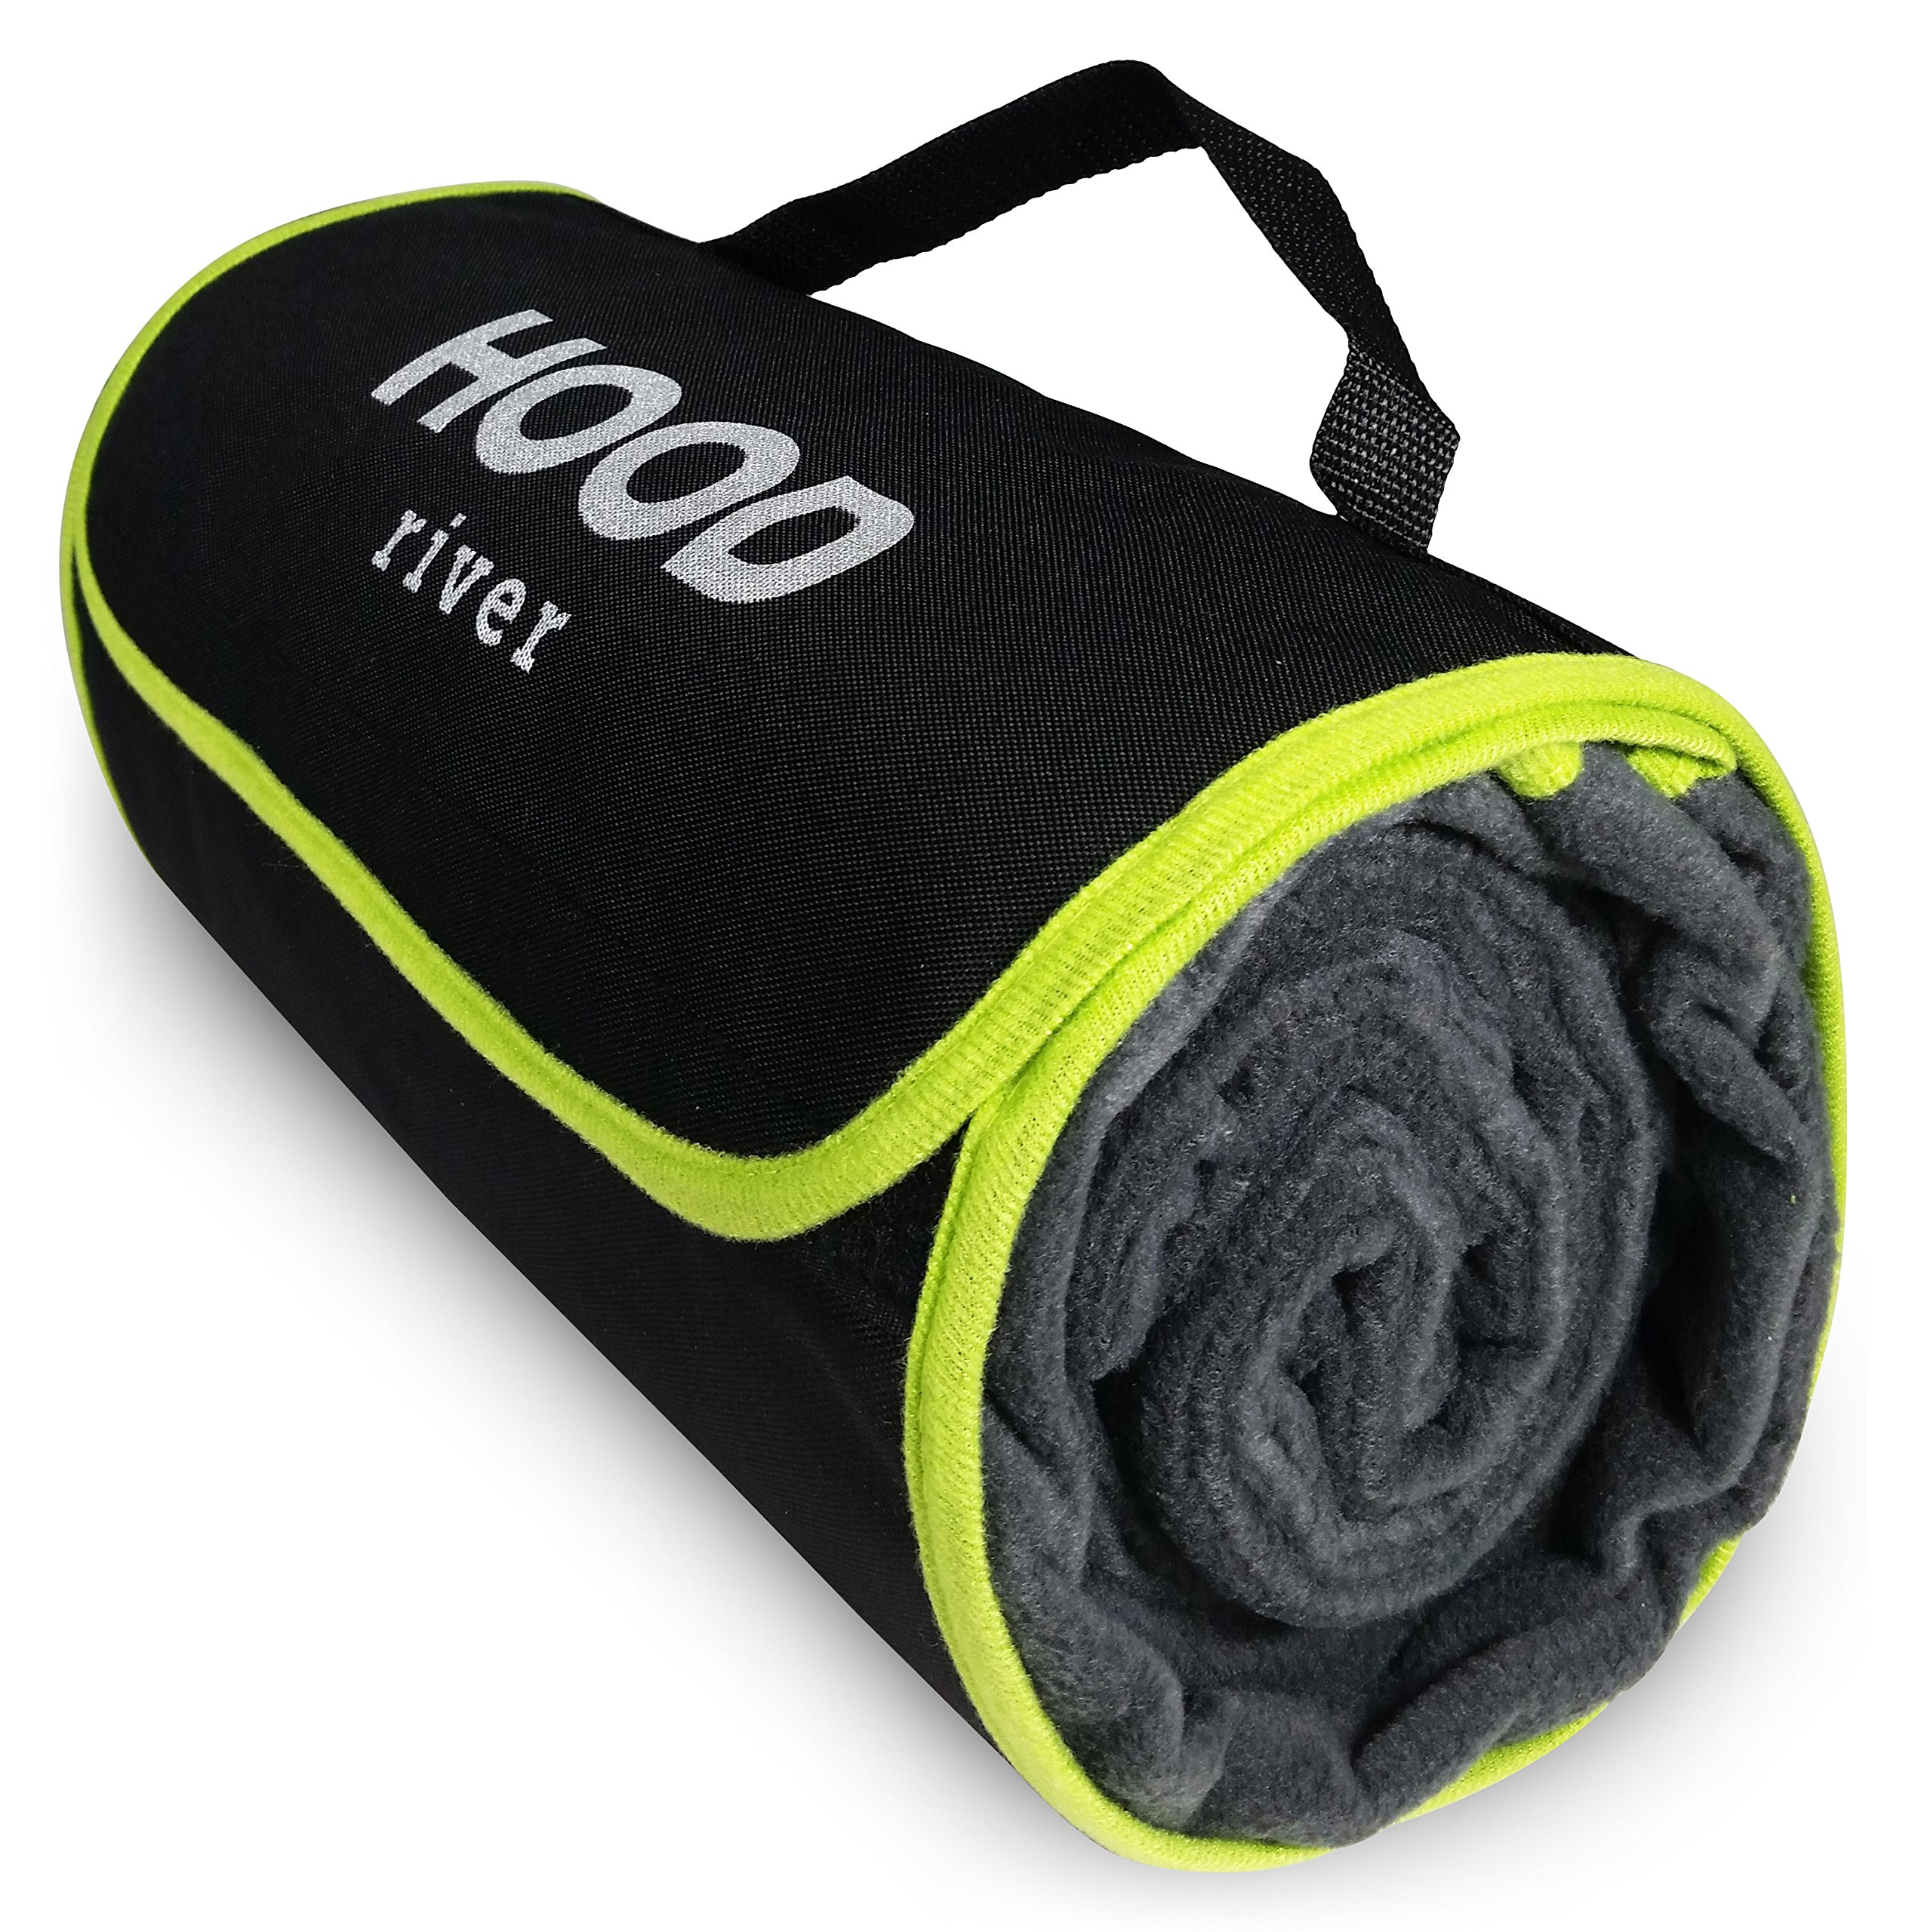 Hood River Fleece Stadium Blanket Outdoor Waterproof Windproof Soft Warm Poly Fleece Picnic Blanket XL Large 59'' x 79'' Self-Folding w/Handle For Tailgating Outdoor Sports Camping and Concerts